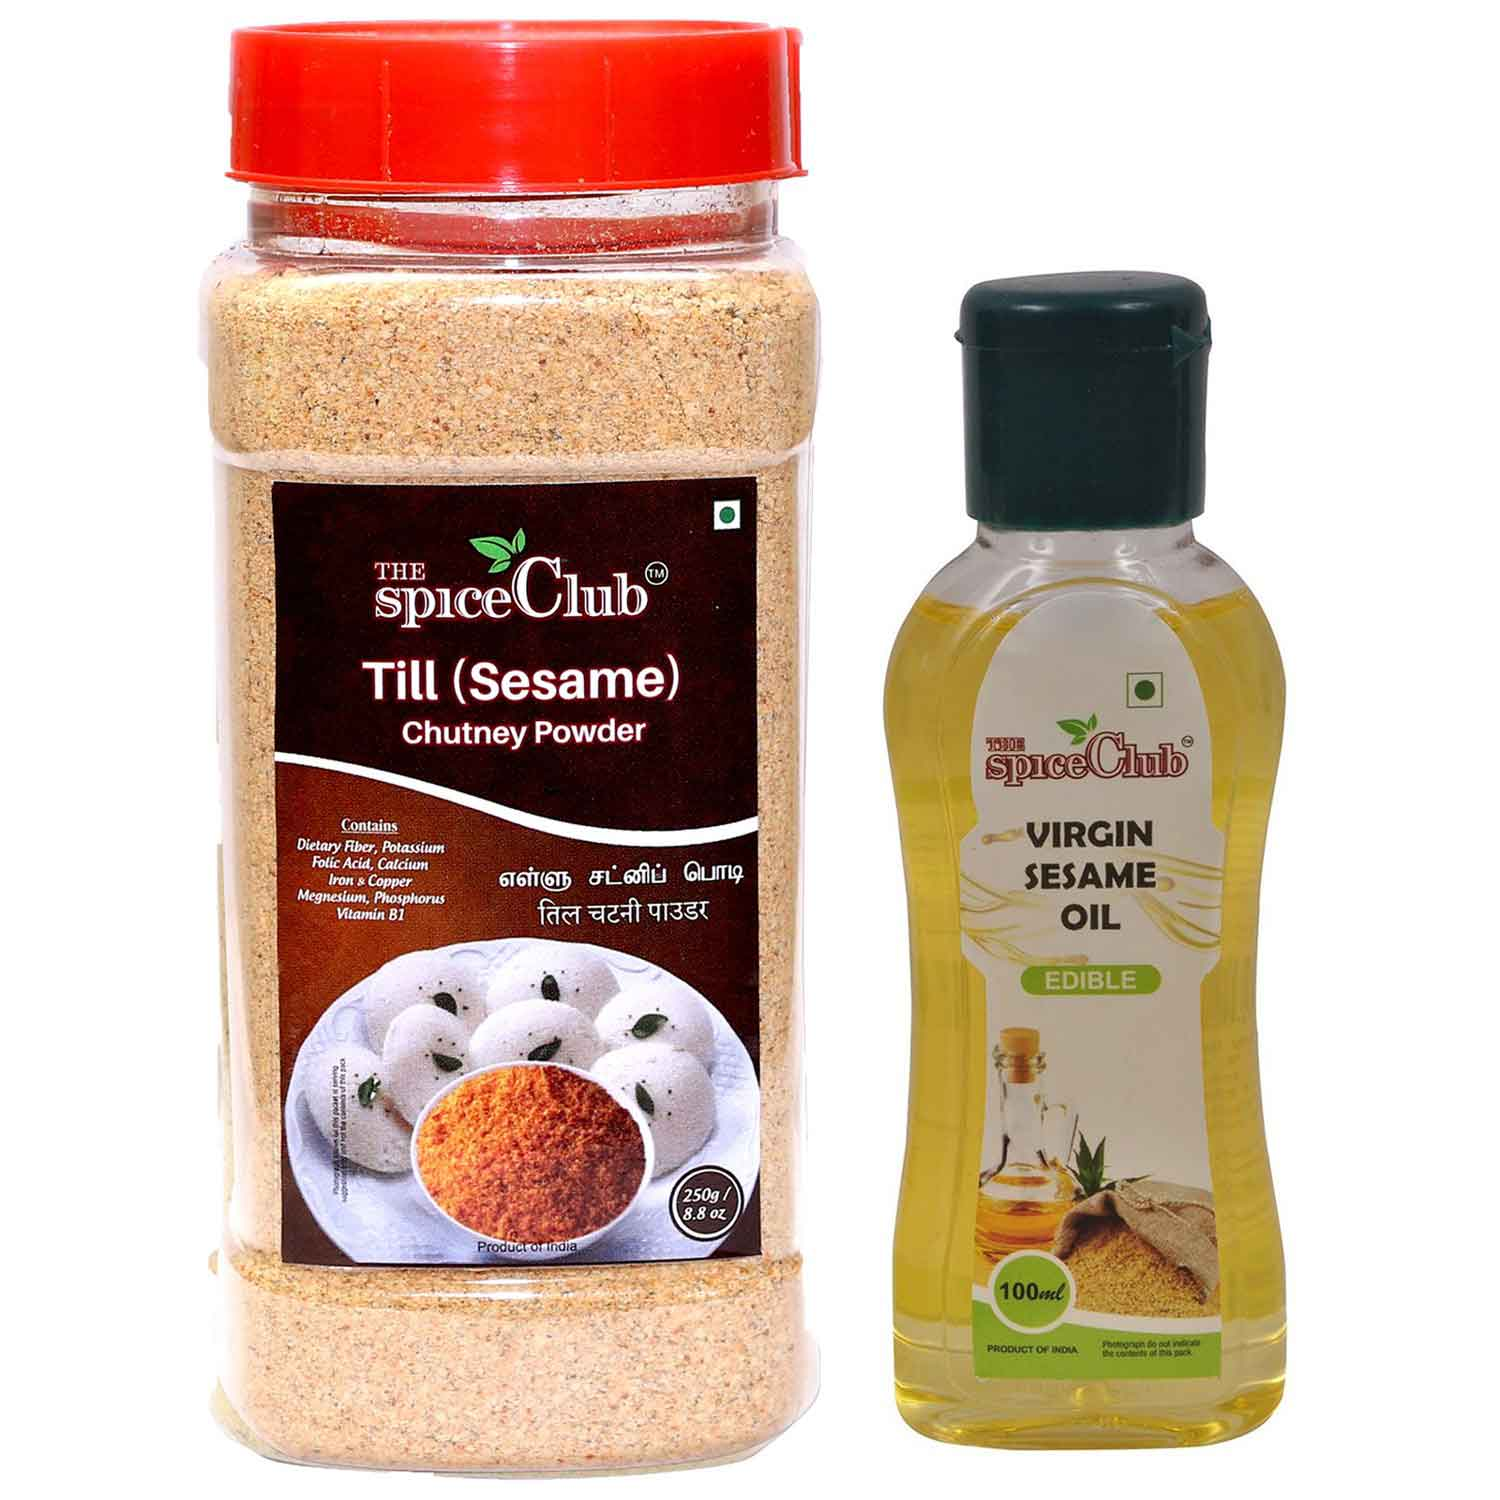 Till (Sesame) Chutney Powder 250g + Virgin Sesame Oil 100ml